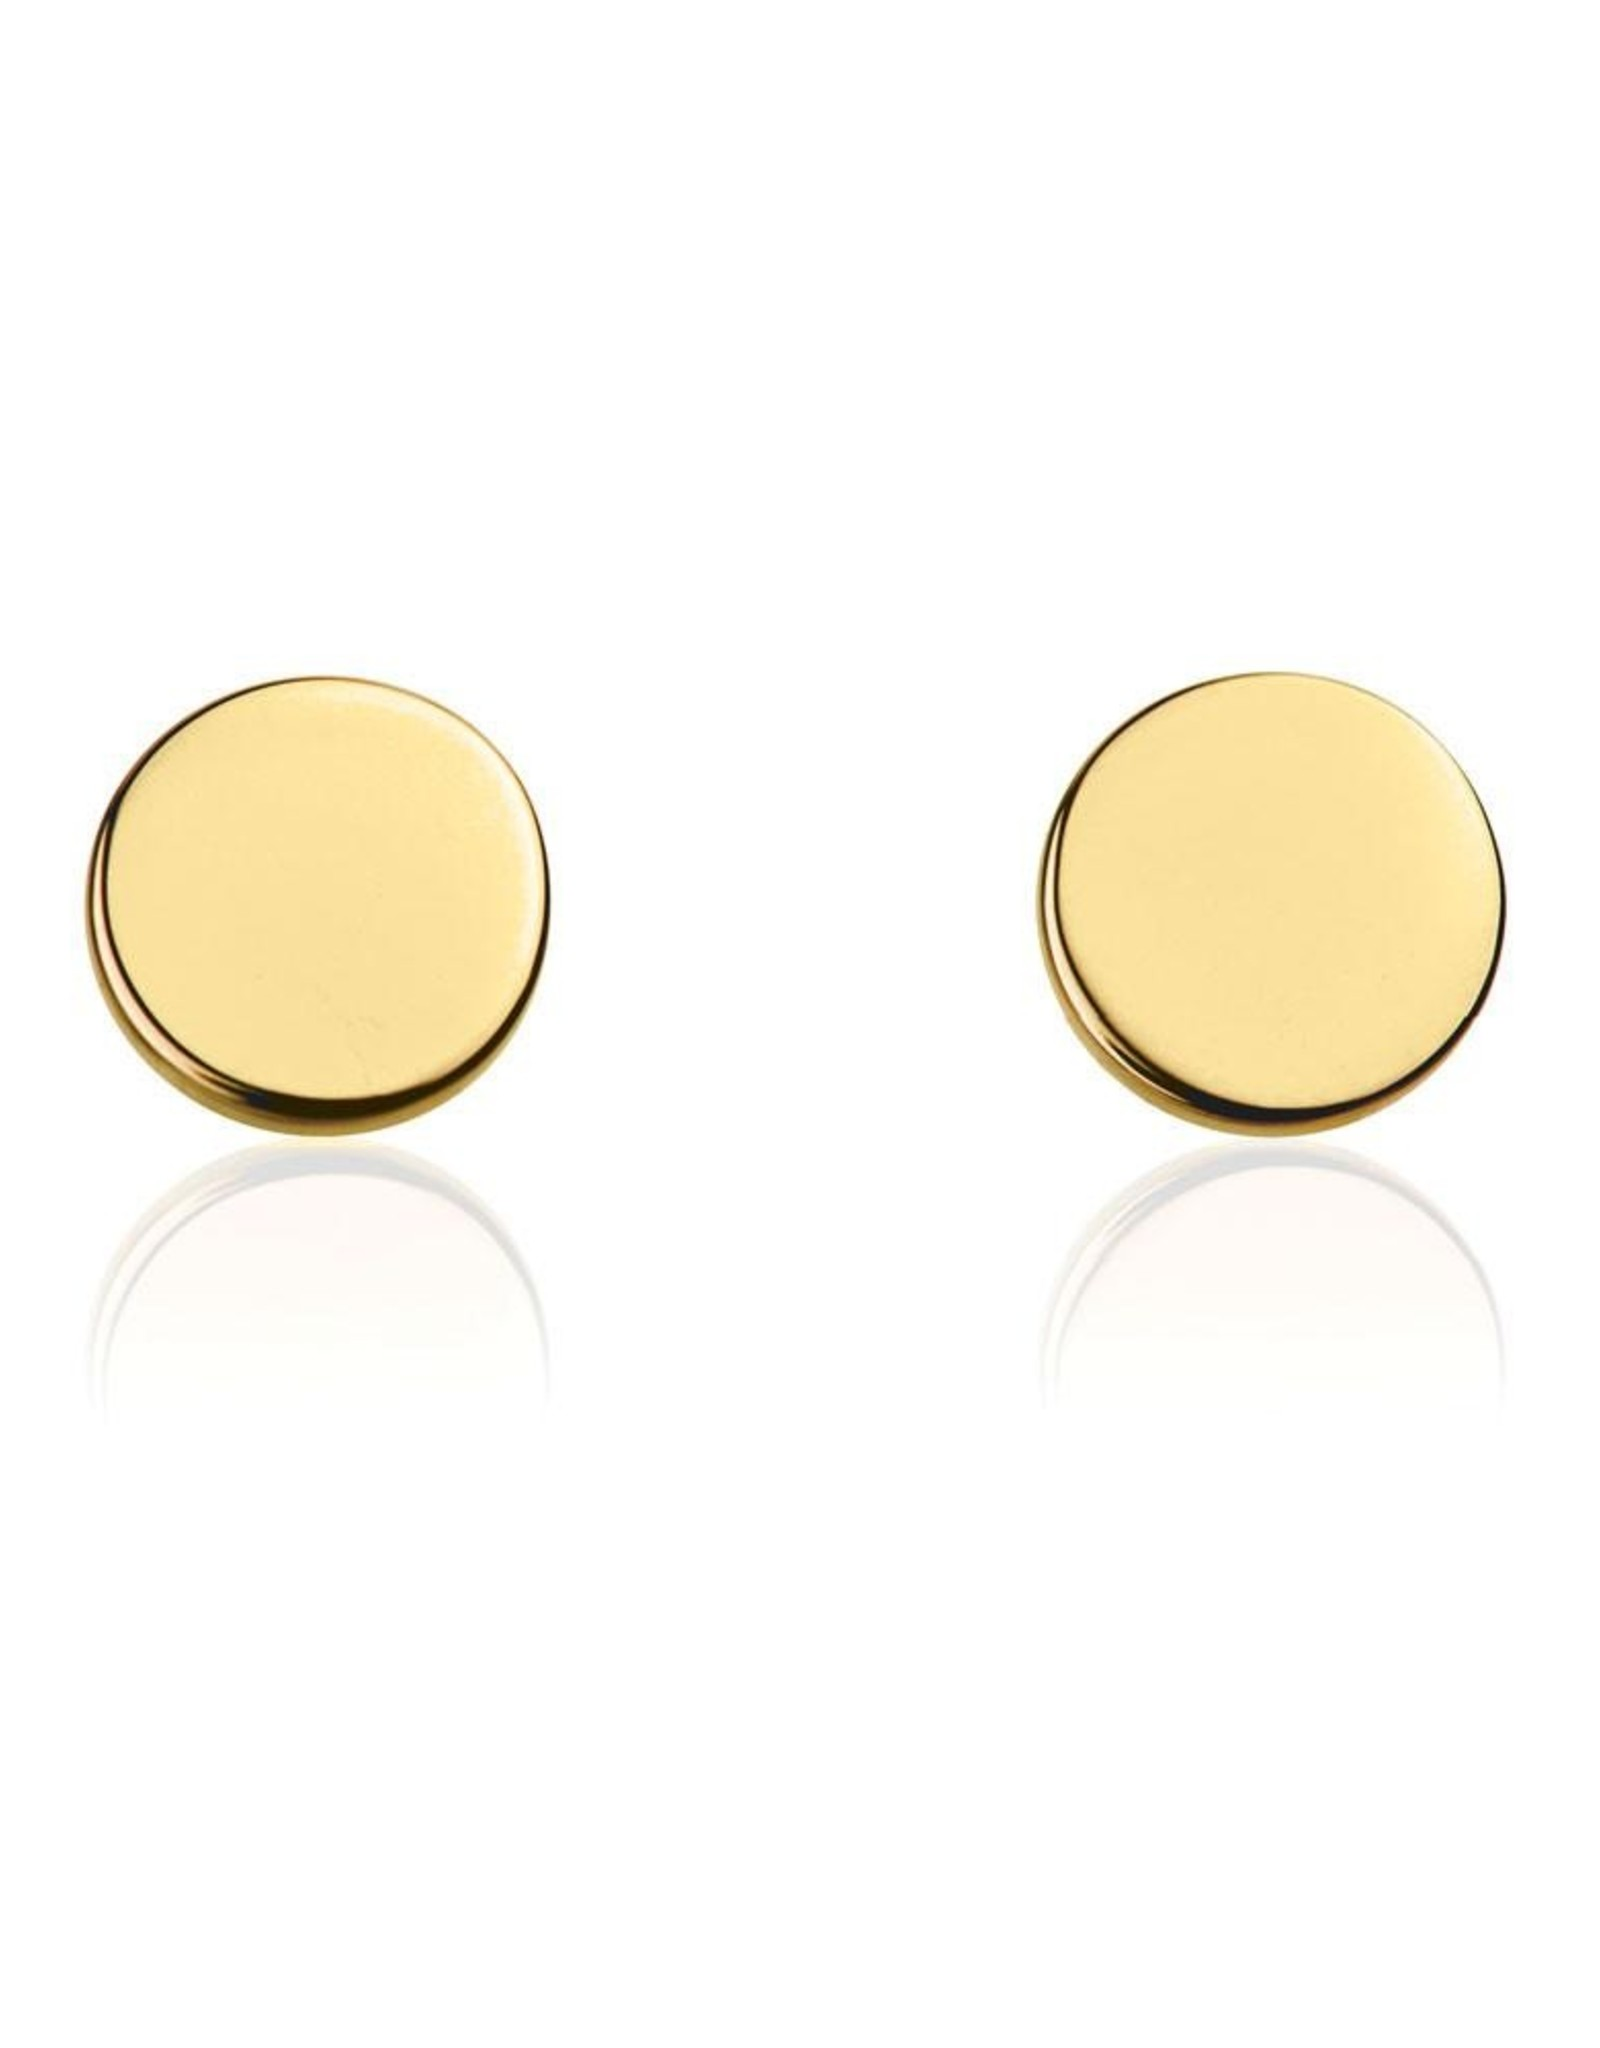 Disc Stud Earring - Gold plated Sterling Silver